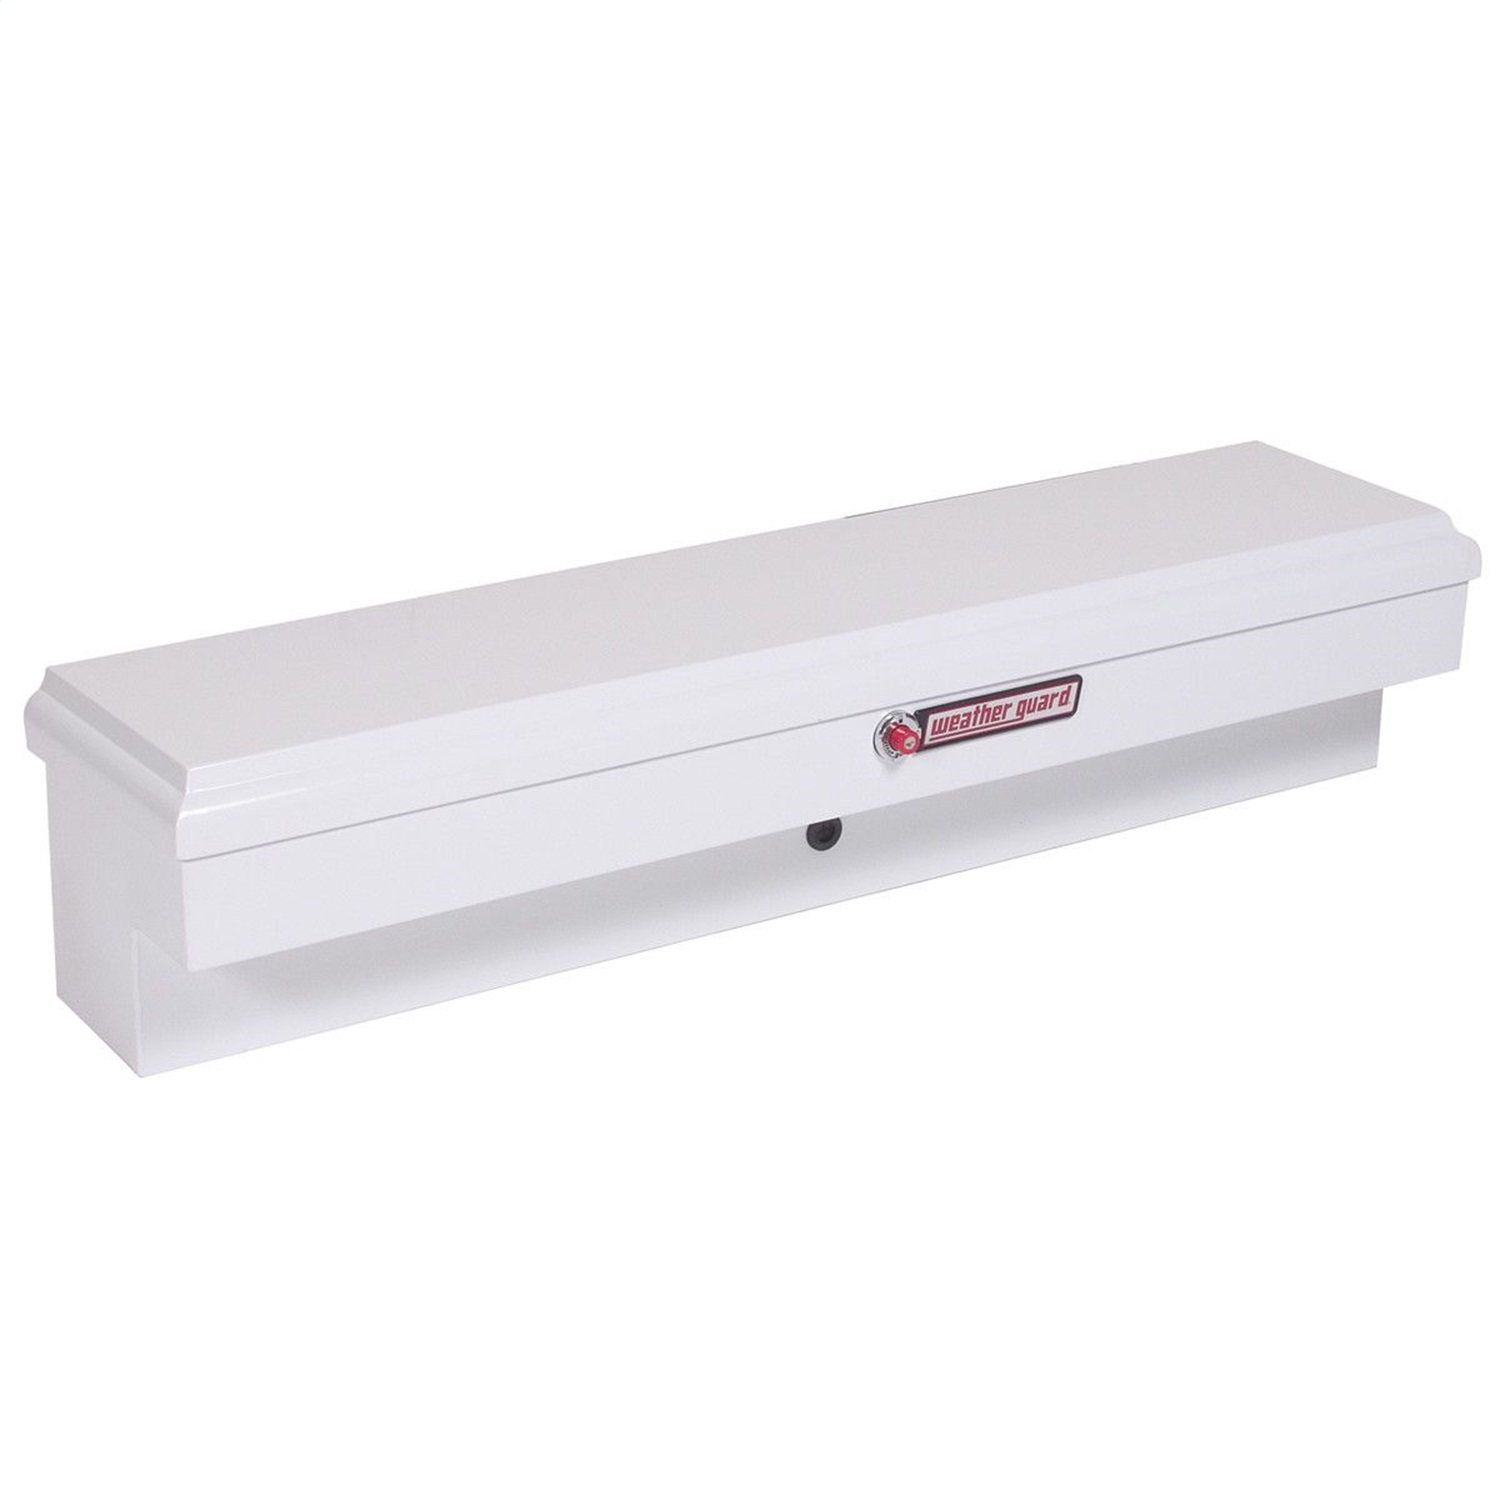 Lo-Side Box, Standard, 4.5 ft., Height 12.88 in., Length 60.38 in., Width 13.63 in., White, Heavy Duty Welded, Steel